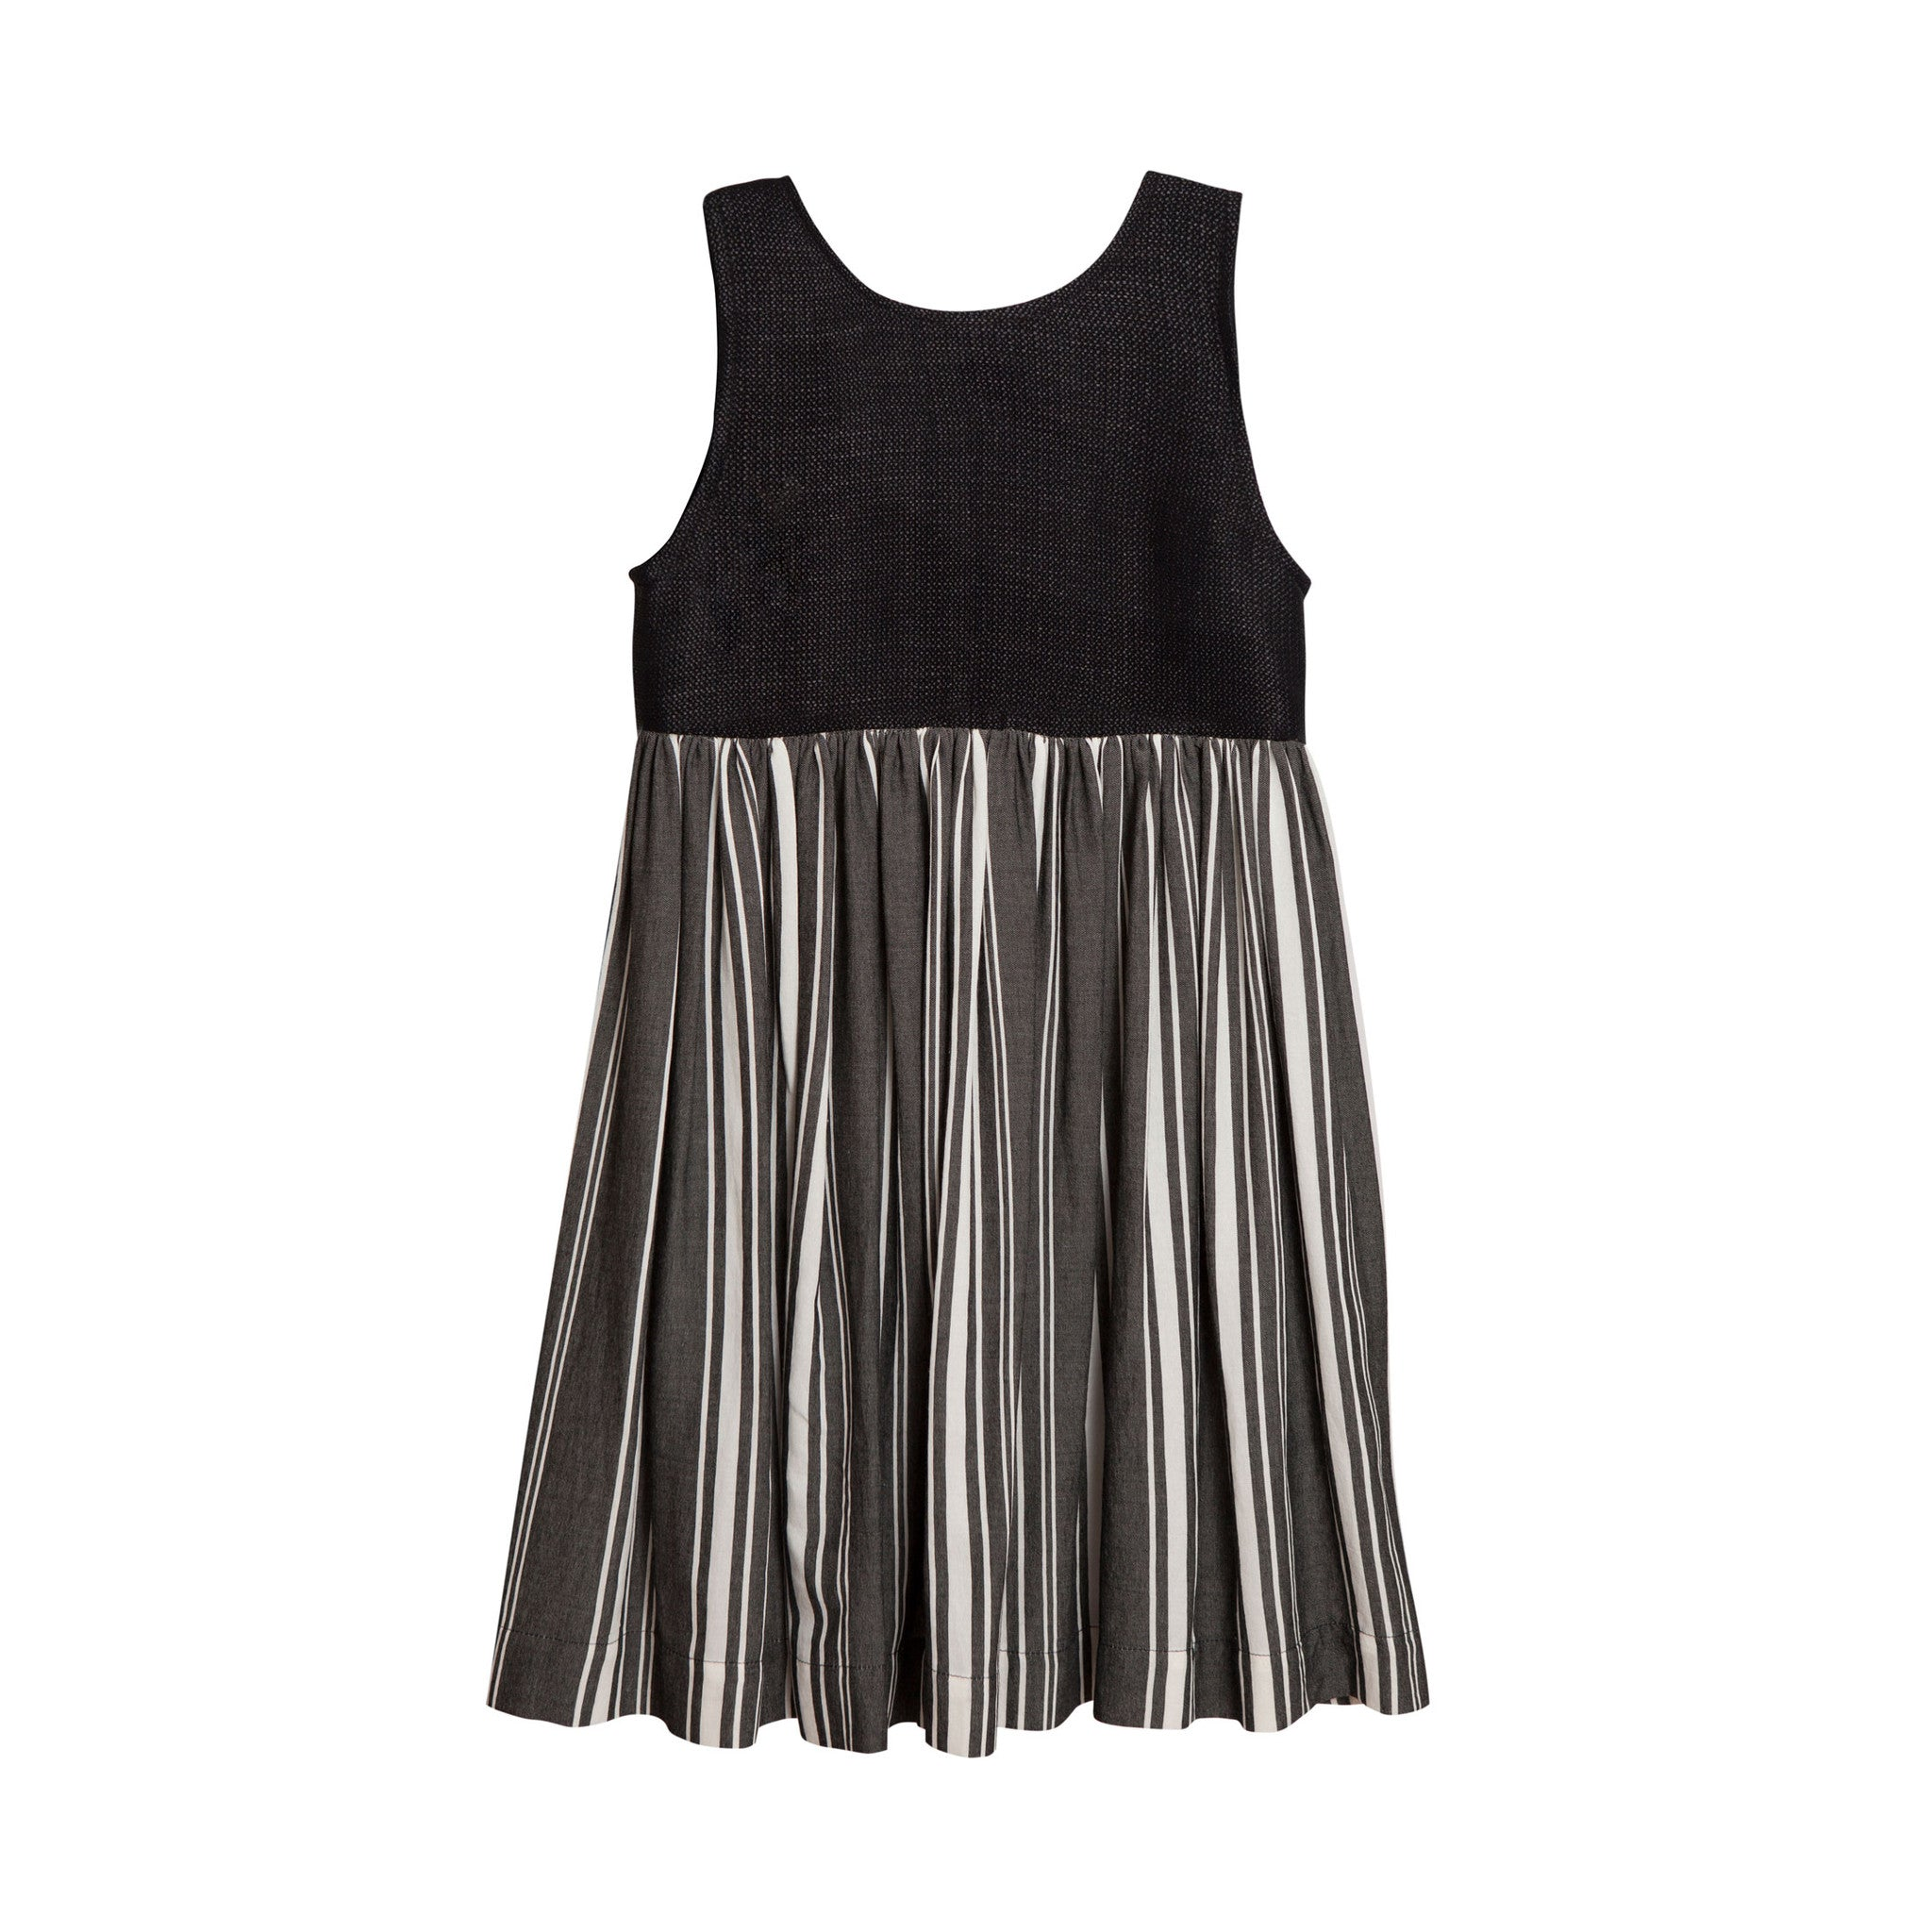 Little Creative Factory Dark Striped Nomad Dress - Ladida